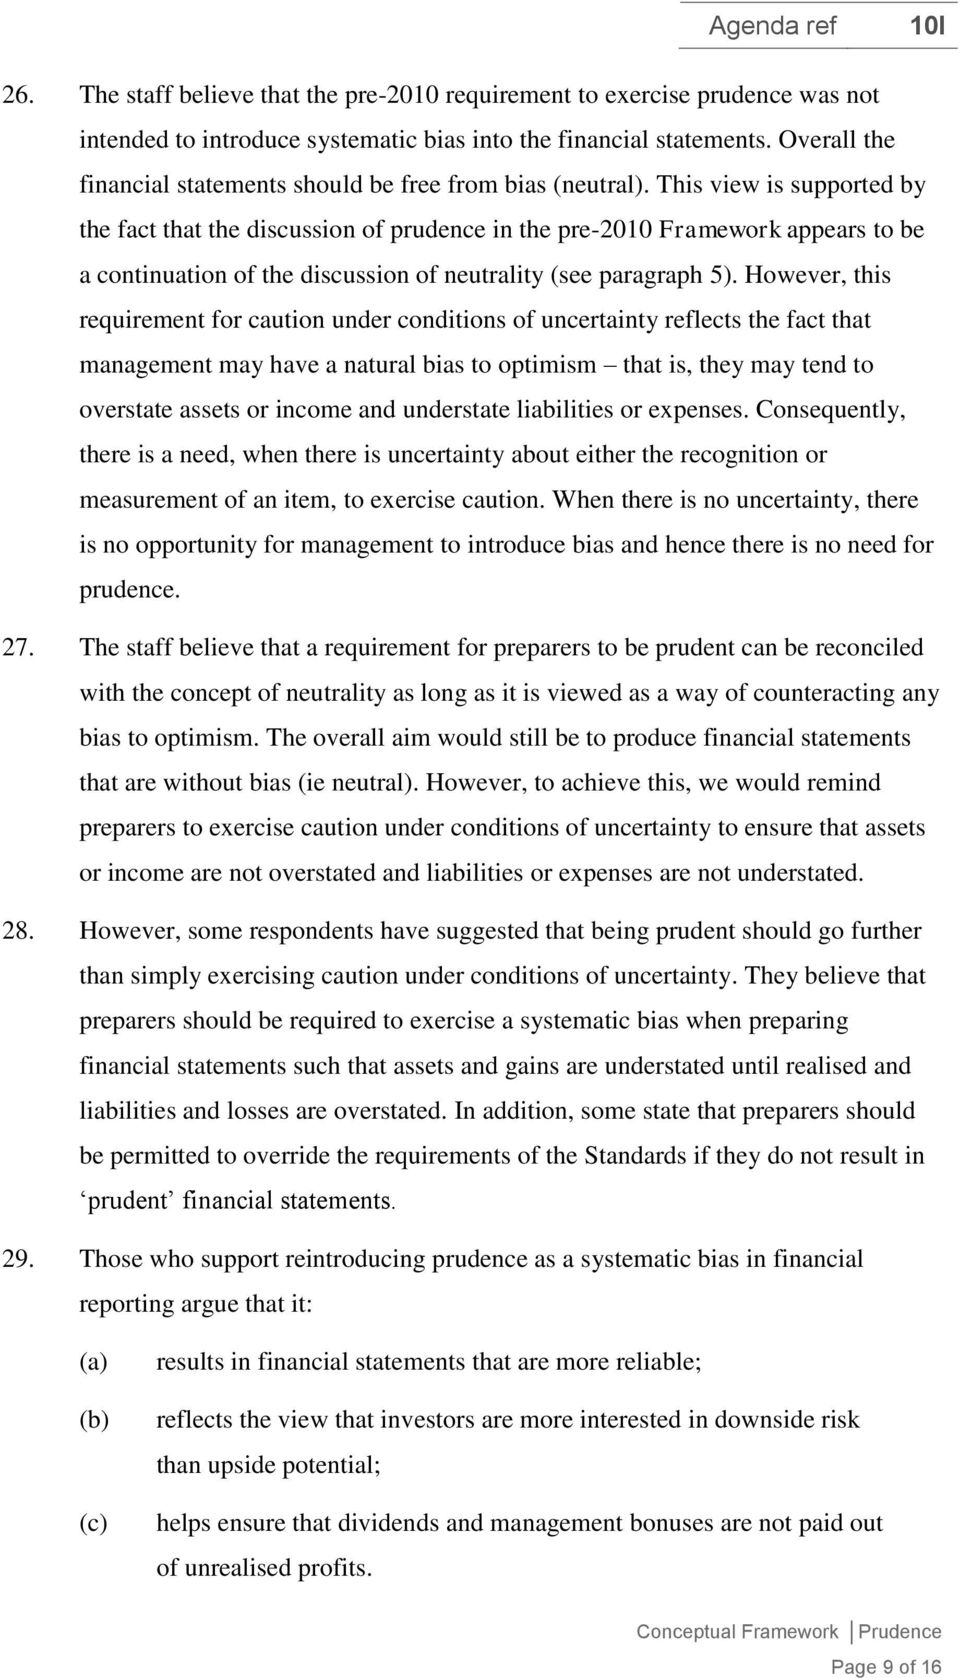 This view is supported by the fact that the discussion of prudence in the pre-2010 Framework appears to be a continuation of the discussion of neutrality (see paragraph 5).